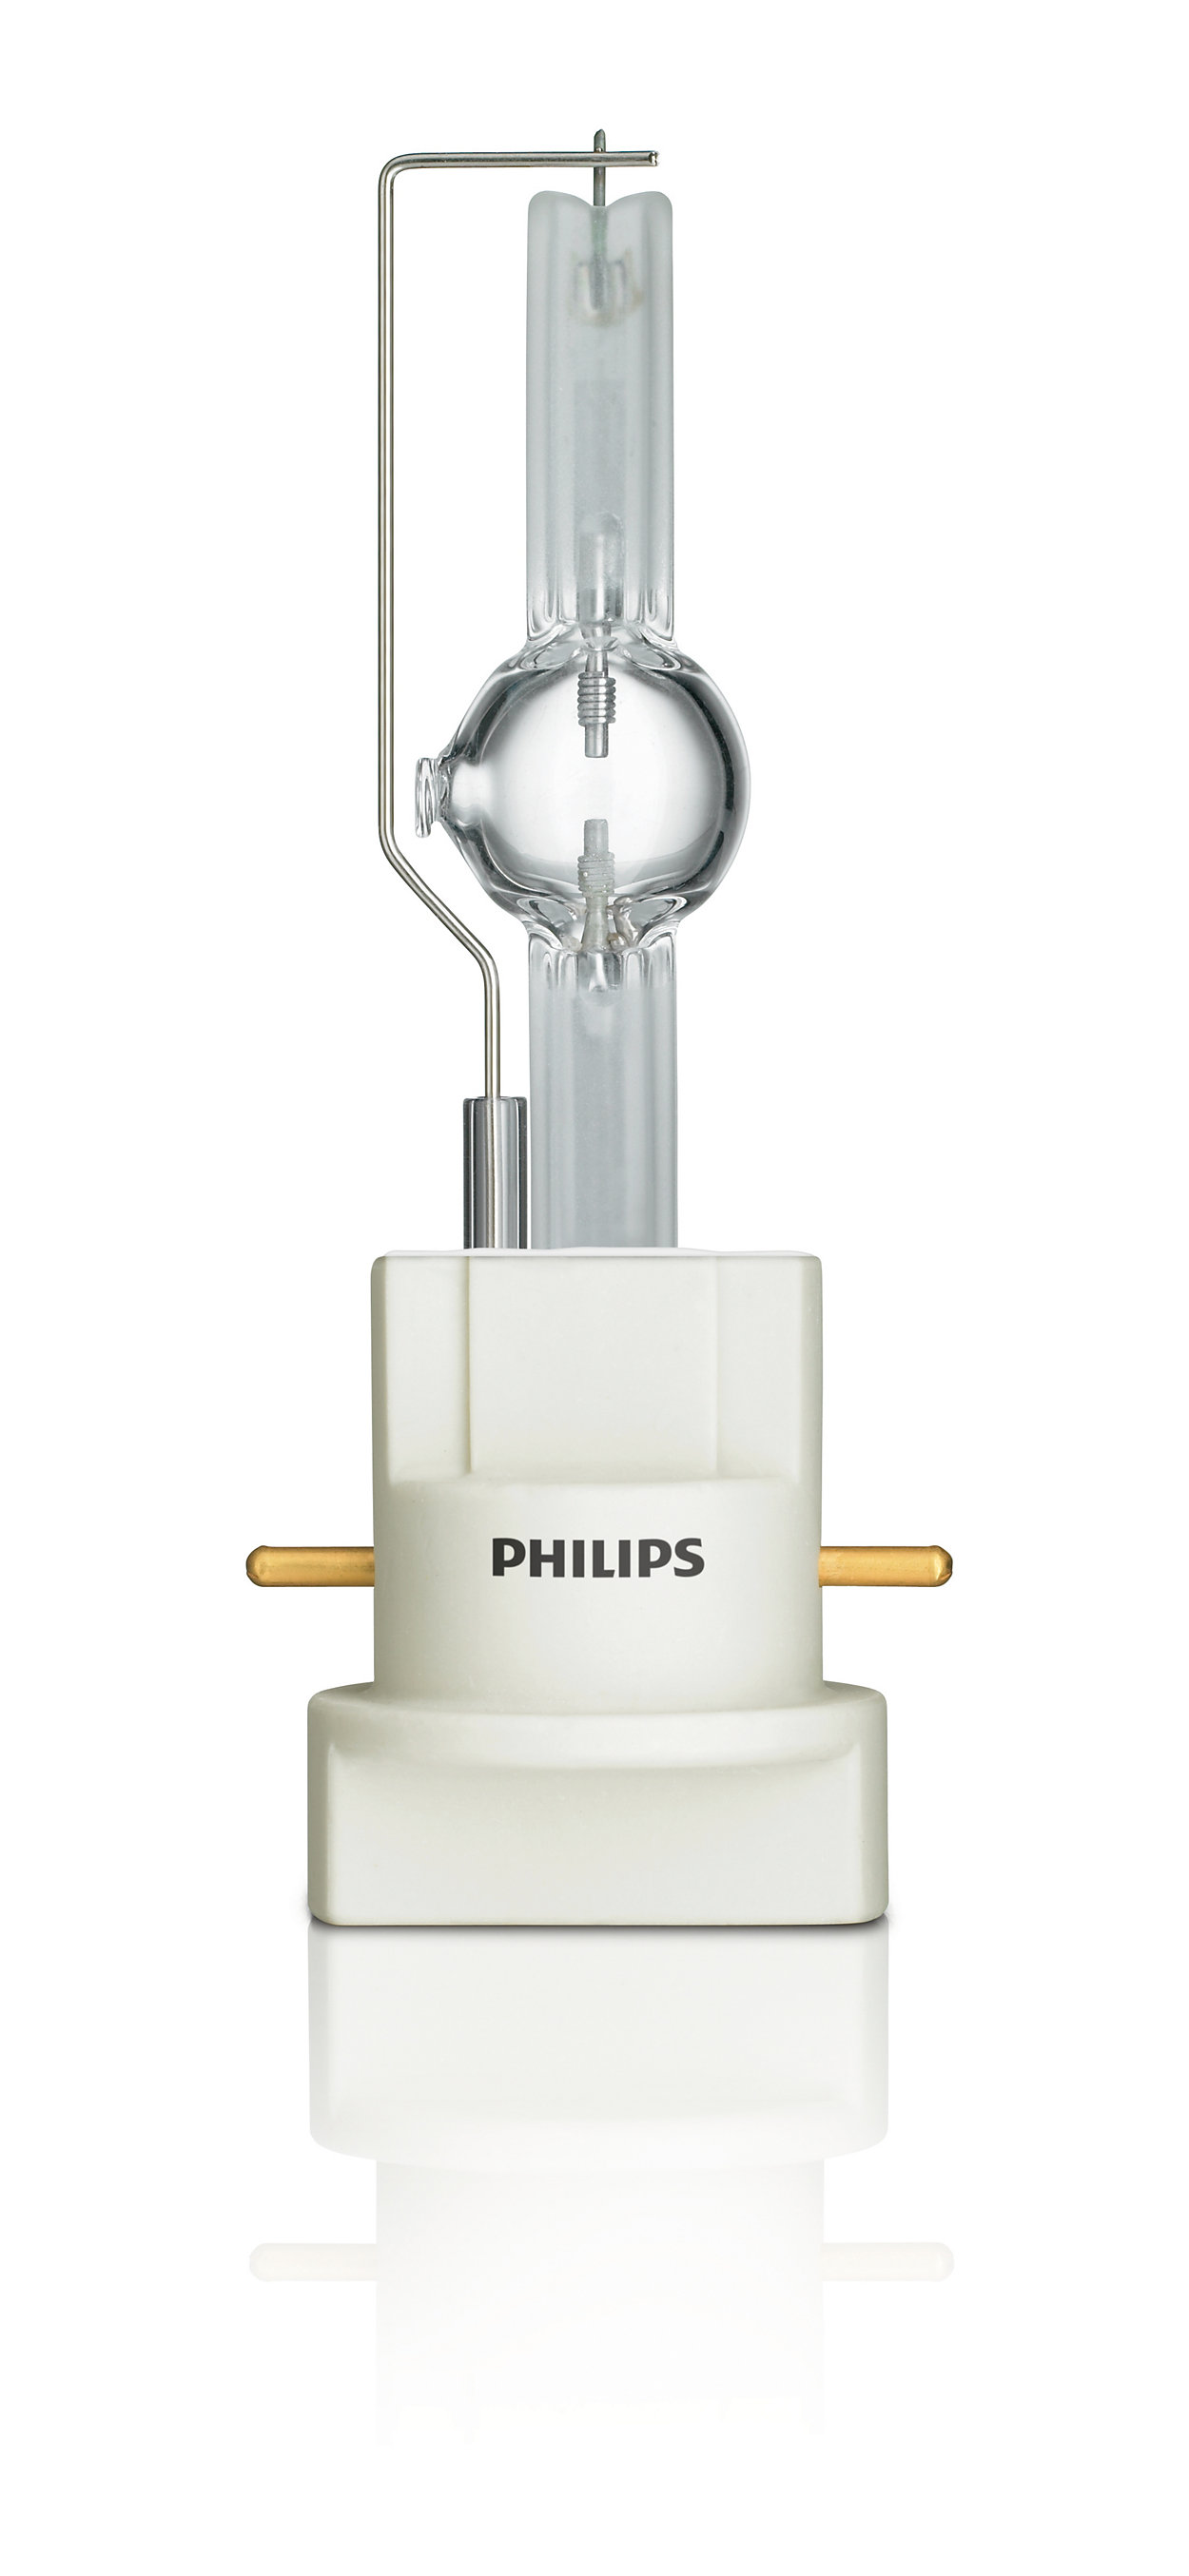 Philips Espectáculo msr